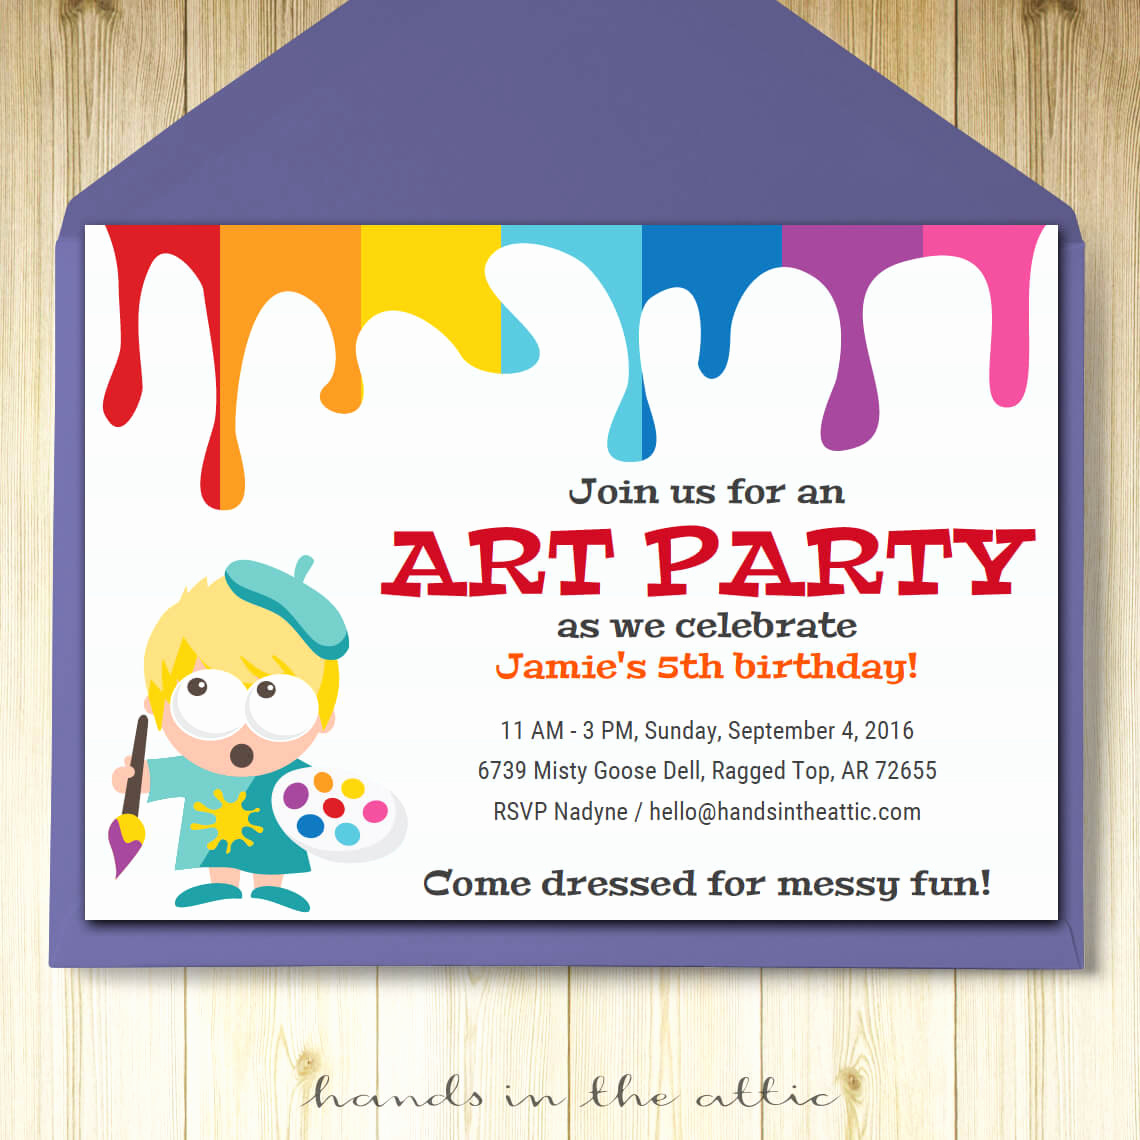 Painting Party Invitation Template New Art Party Invitation Card Template Printable Kids Painting